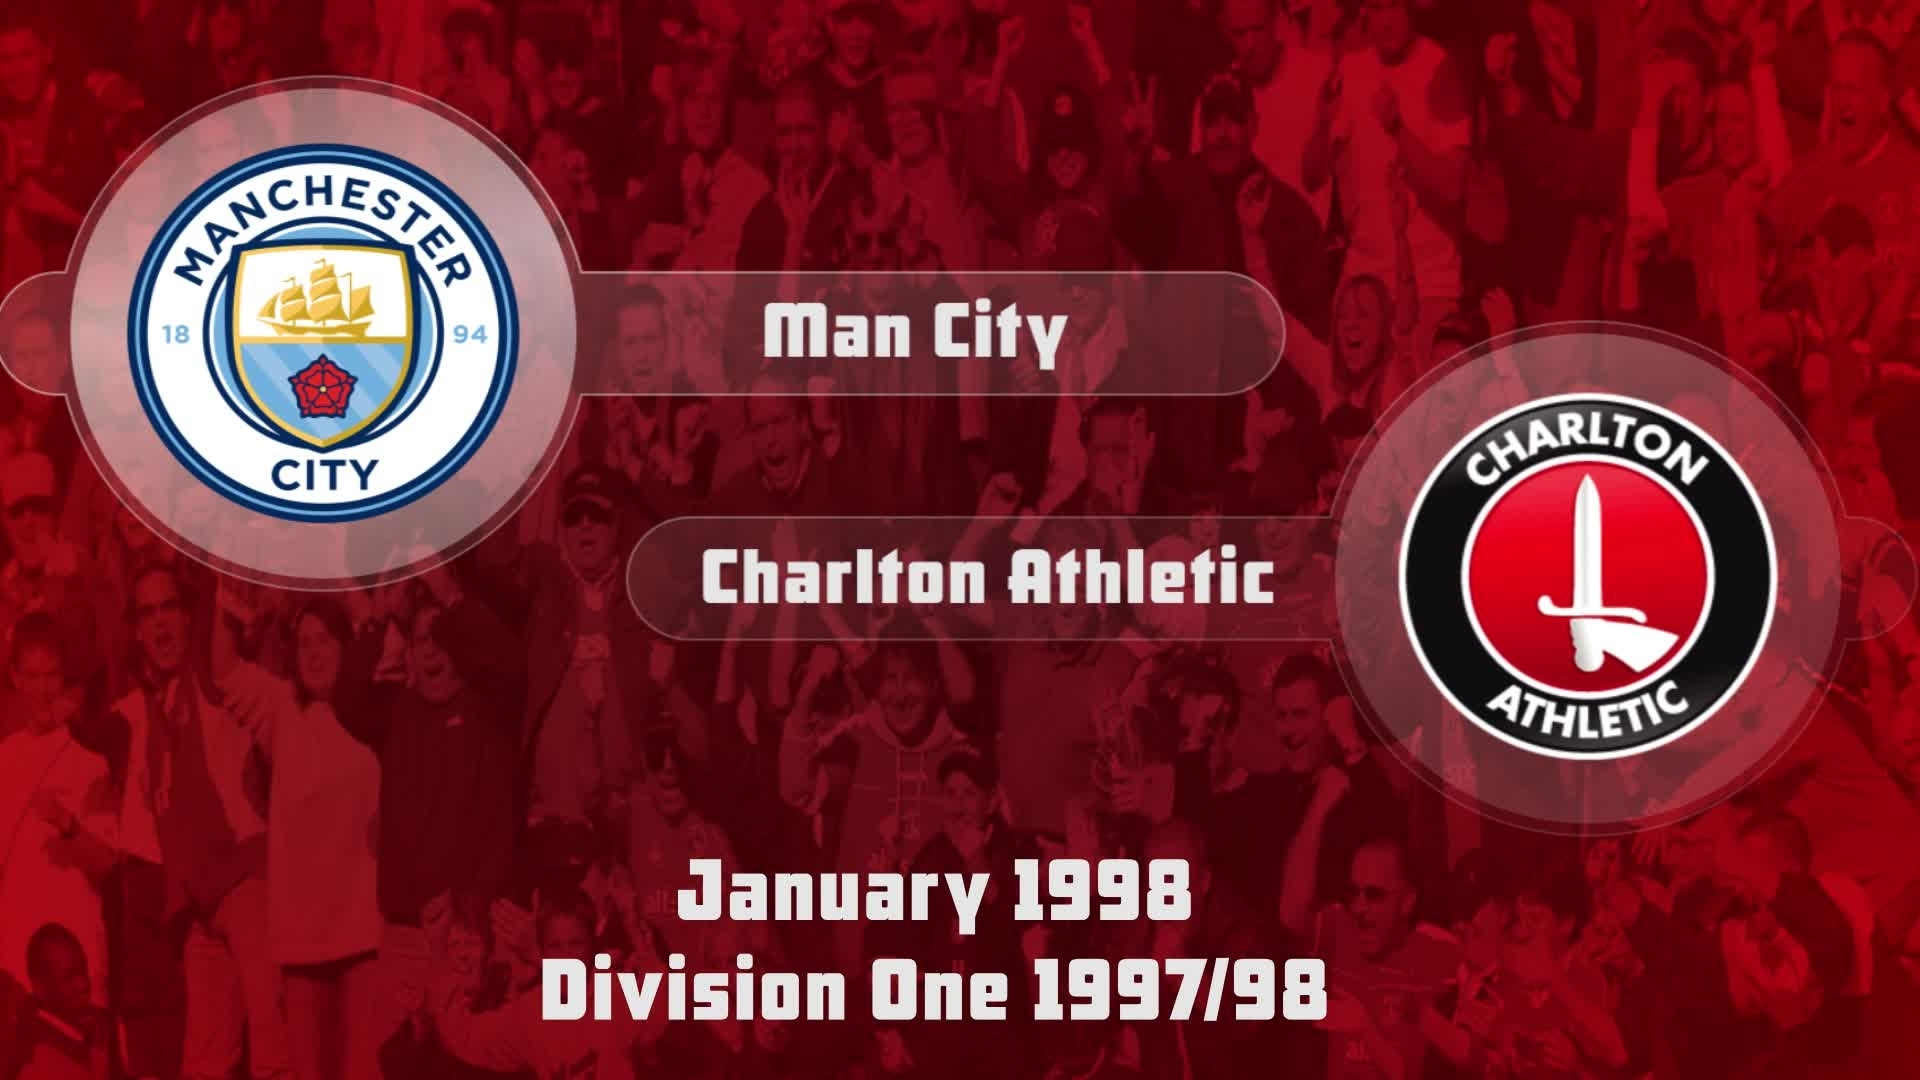 32 HIGHLIGHTS | Man City 2 Charlton 2 (Jan 1998)